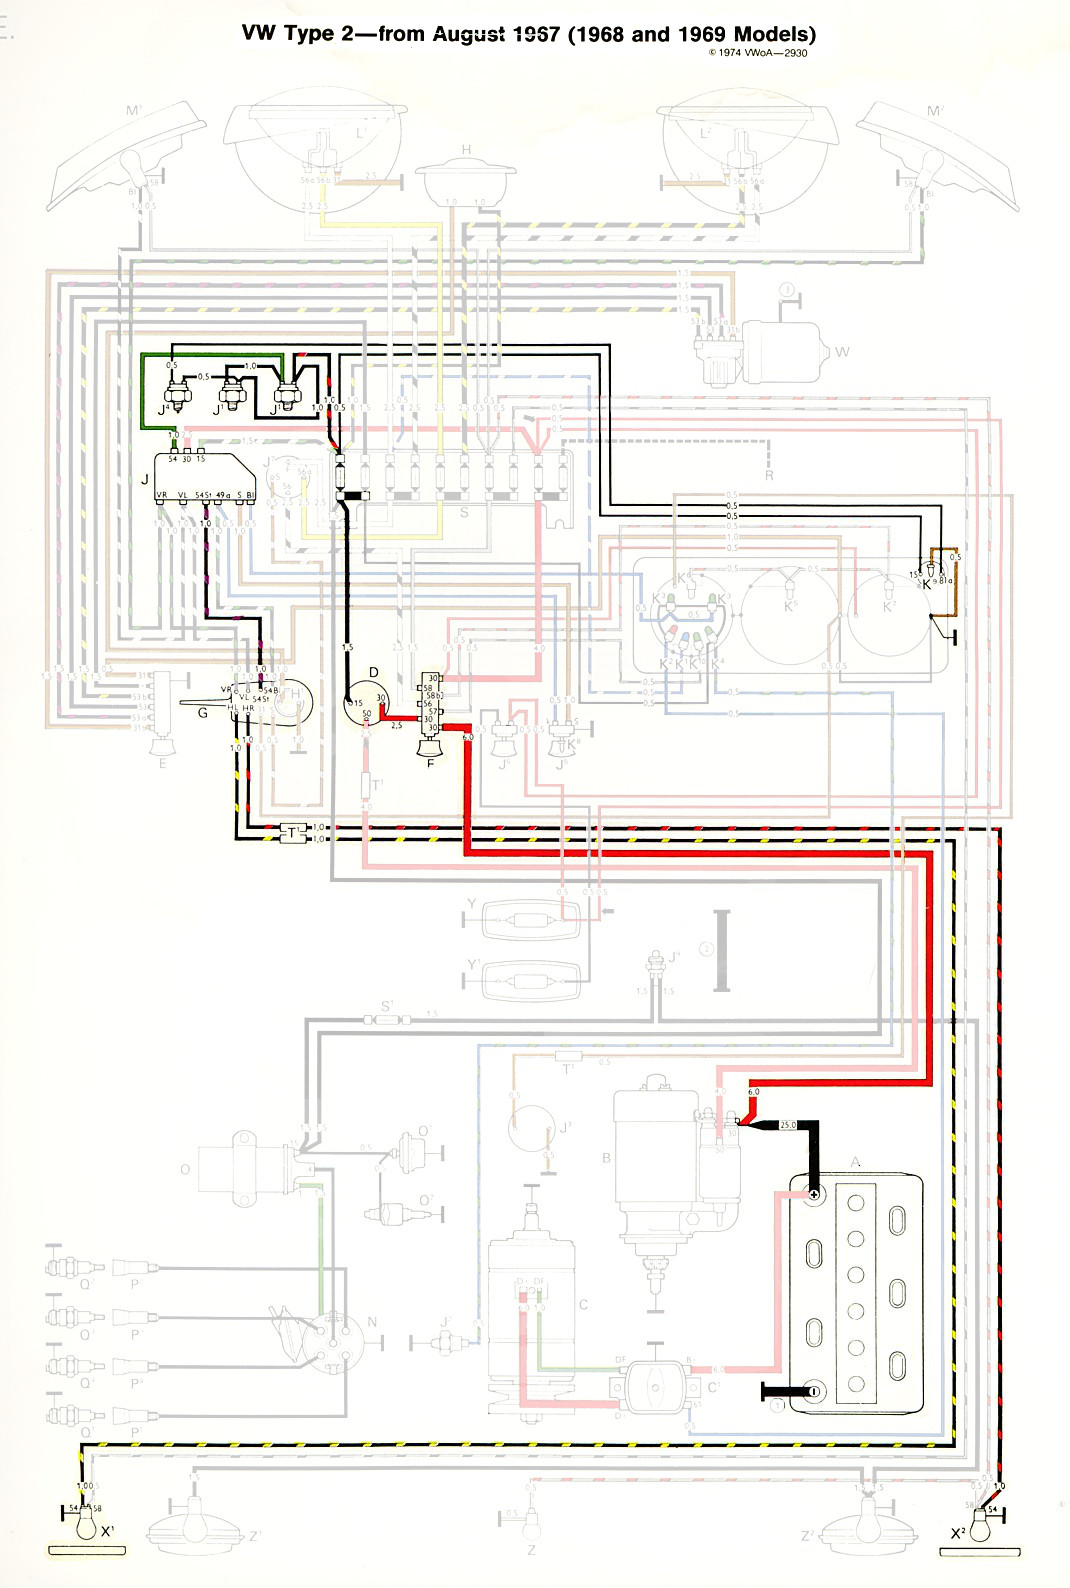 Wiring Diagram Moreover 1966 Chevrolet Impala Wiring Diagram On 74